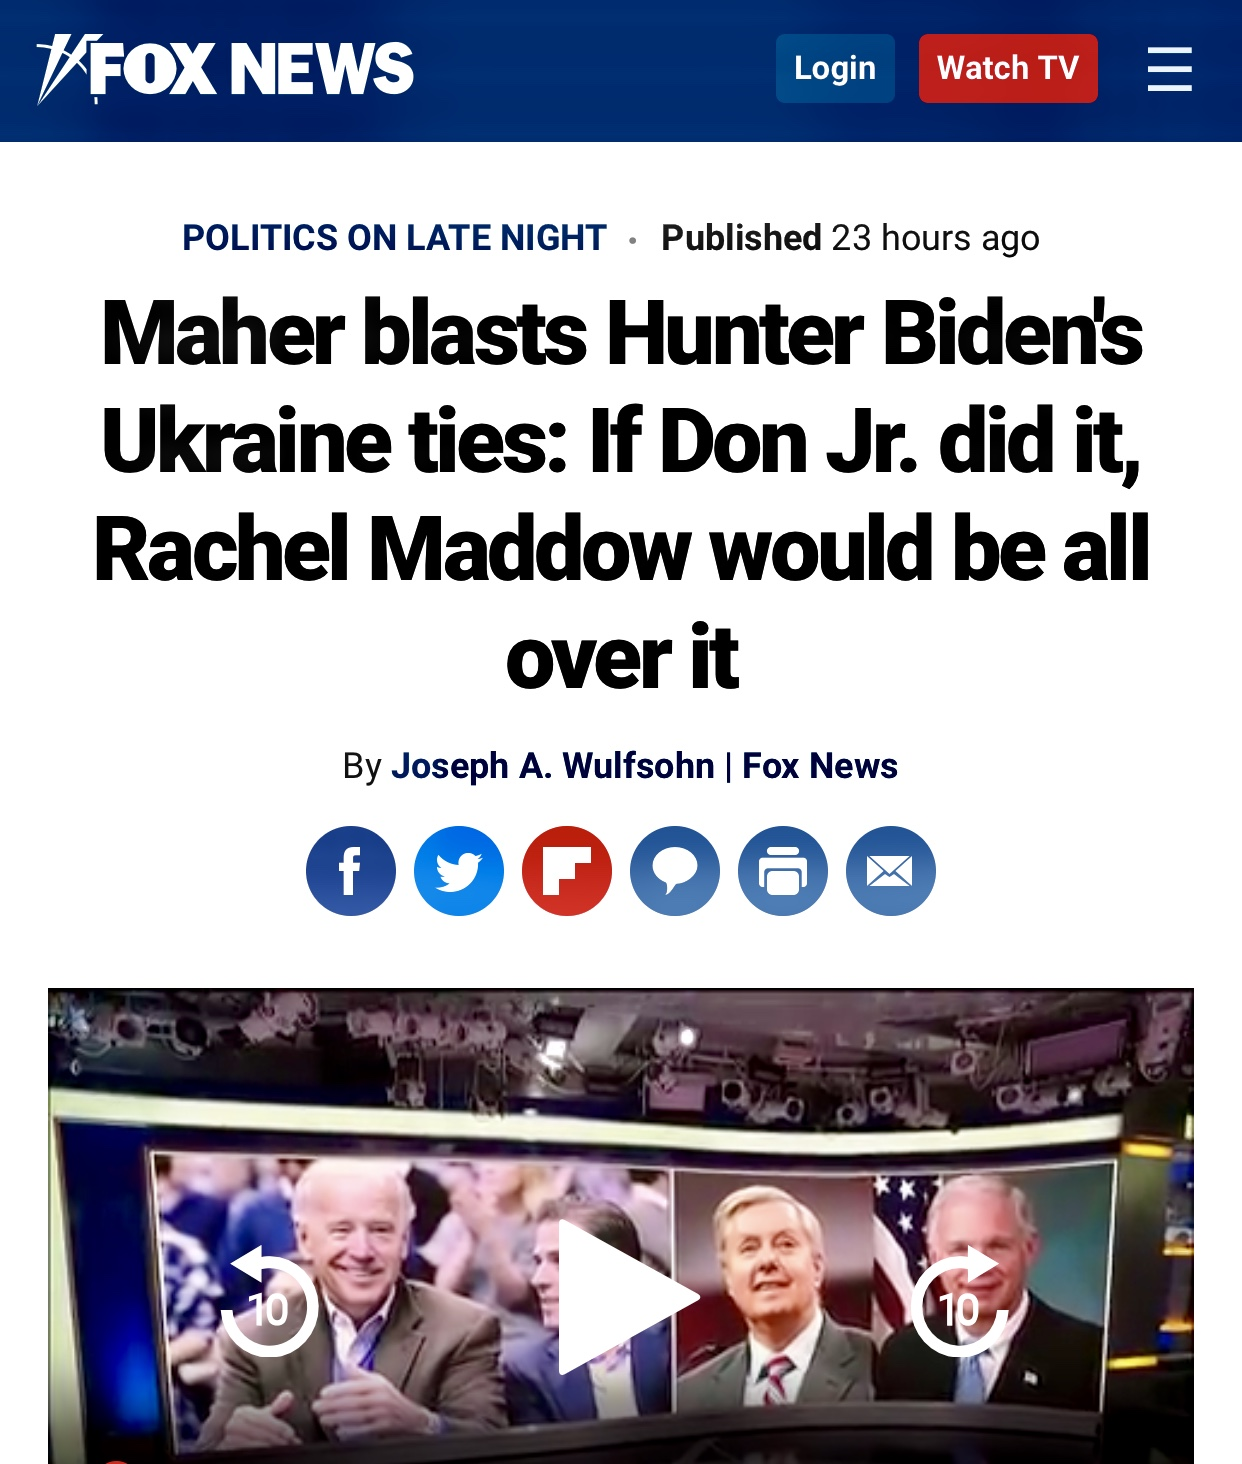 Maher Blasts Hunter Biden's Ukraine ties: If Don Jr. did it, Rachel Maddow Would Be All Over It